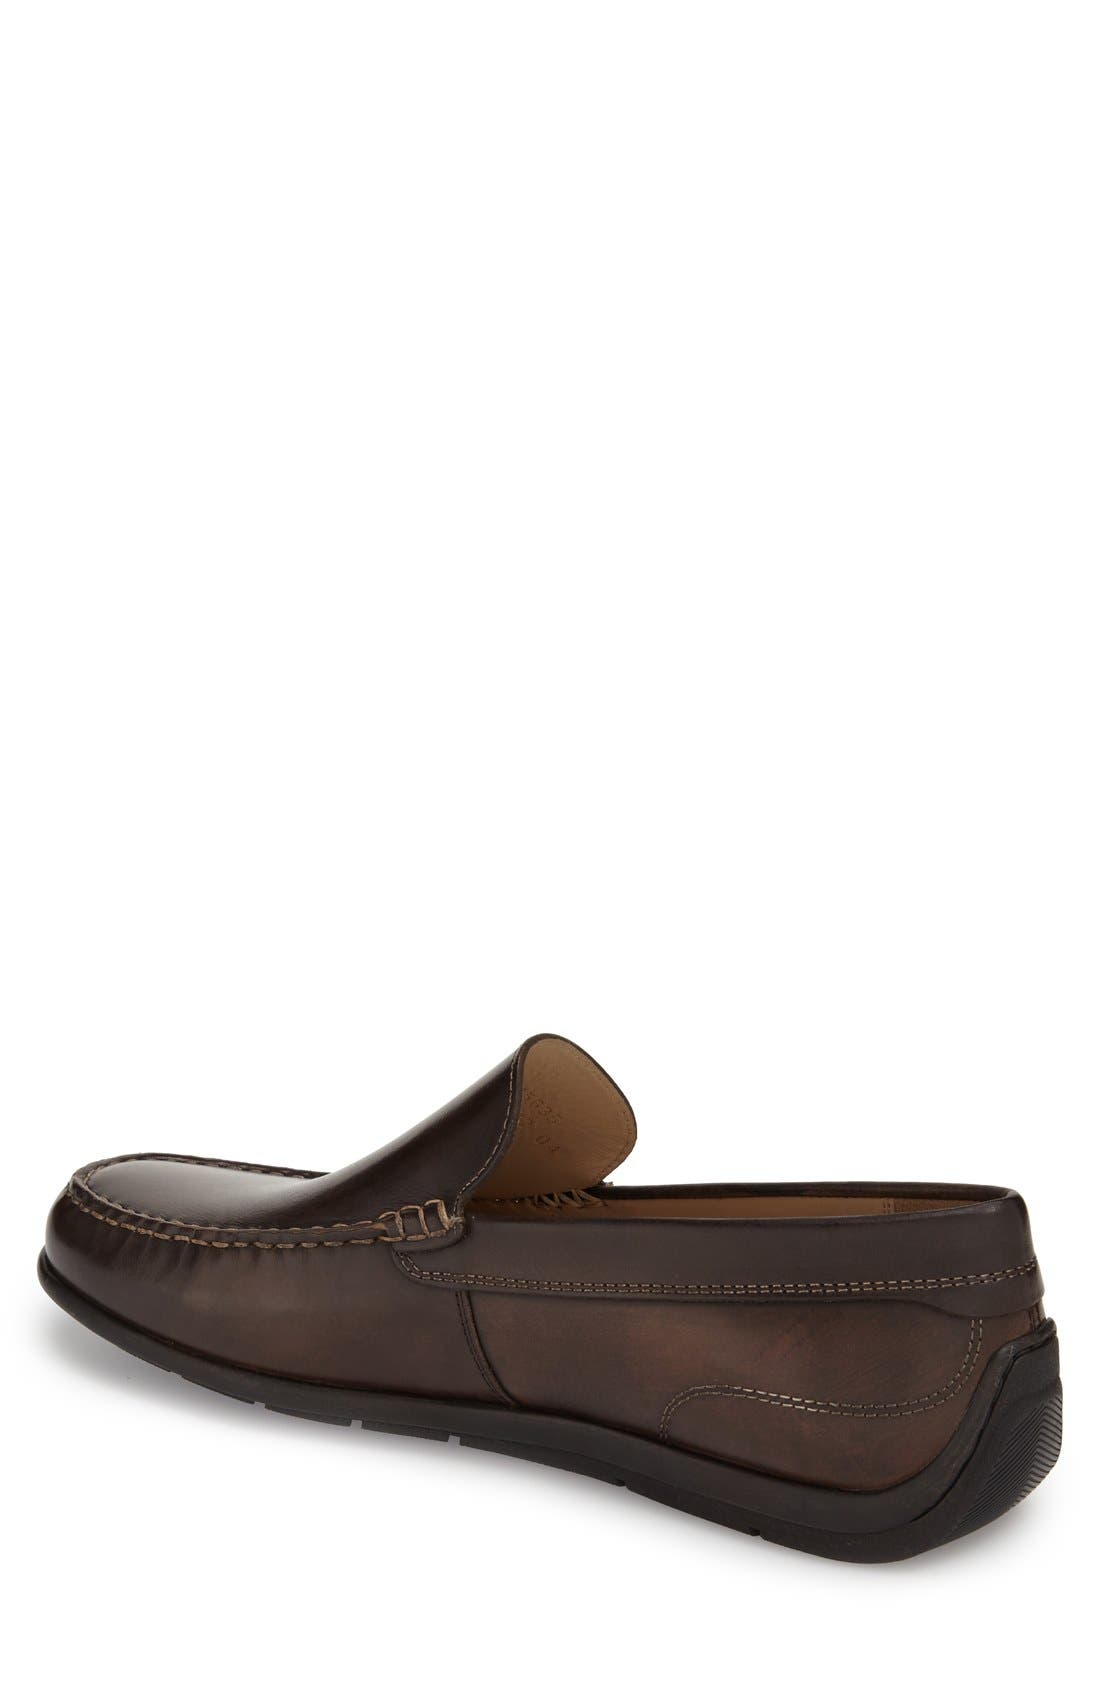 'Classic Moc II' Venetian Loafer,                             Alternate thumbnail 2, color,                             Coffee Leather